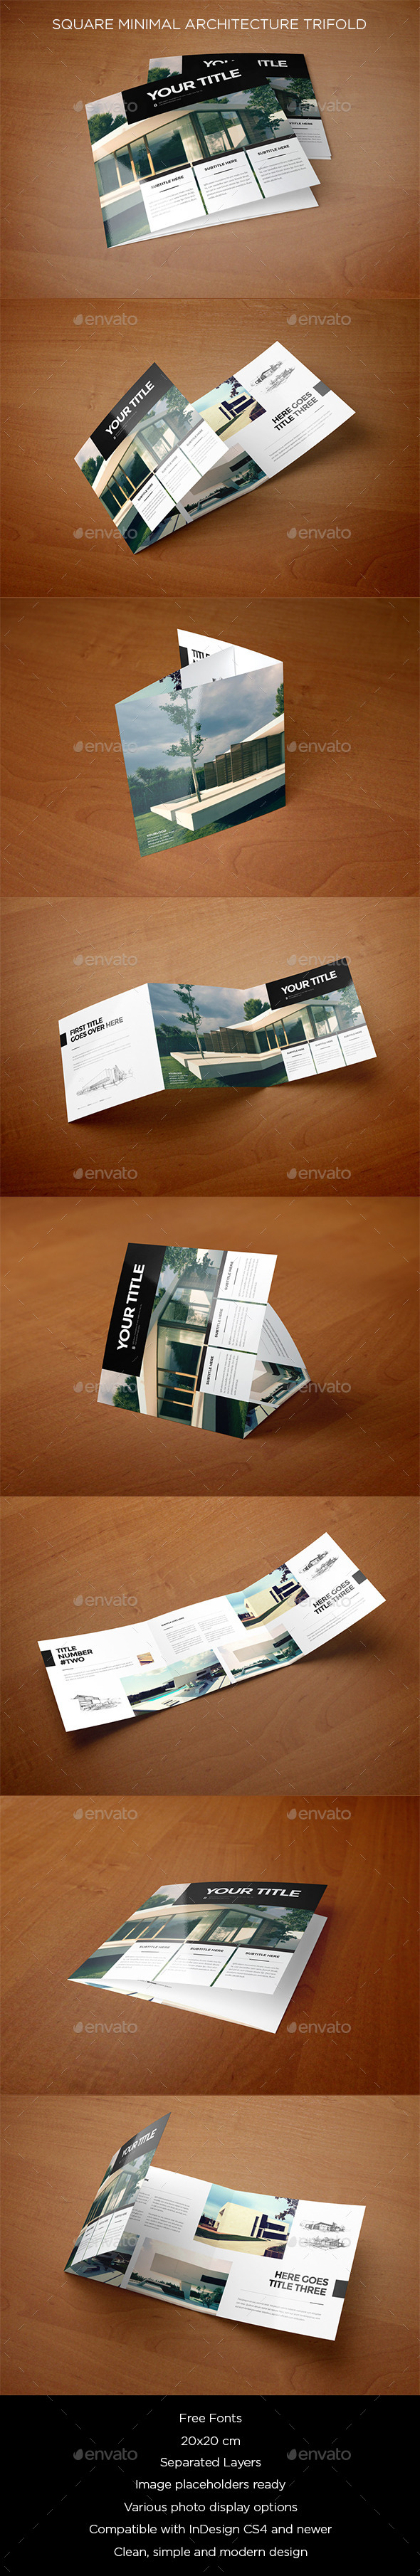 GraphicRiver Square Minimal Architecture Trifold 9999674